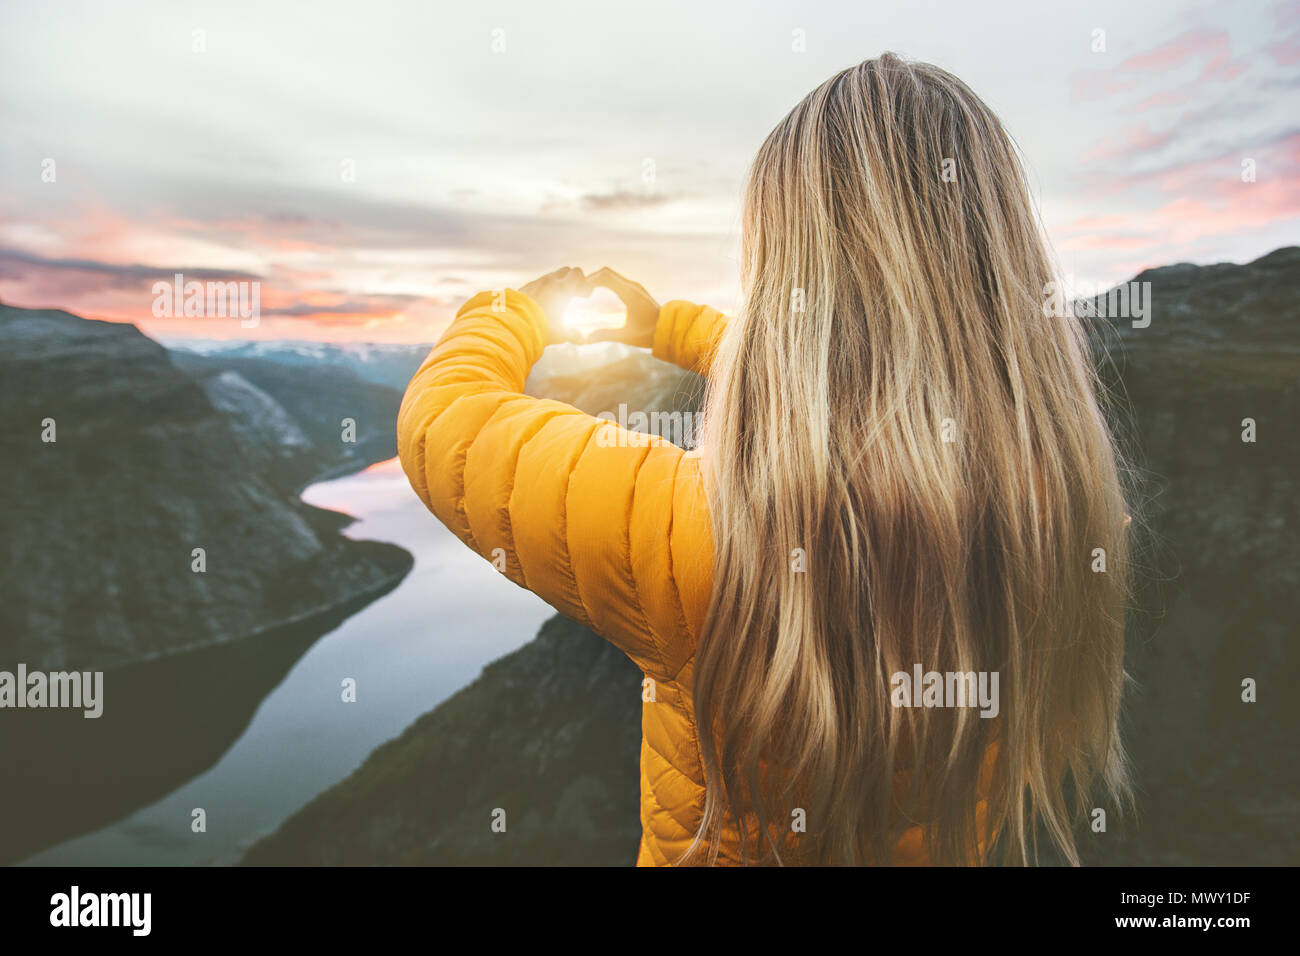 Woman traveling in sunset mountains hands heart symbol shaped Lifestyle emotional concept vacations weekend getaway aerial Norway landscape - Stock Image